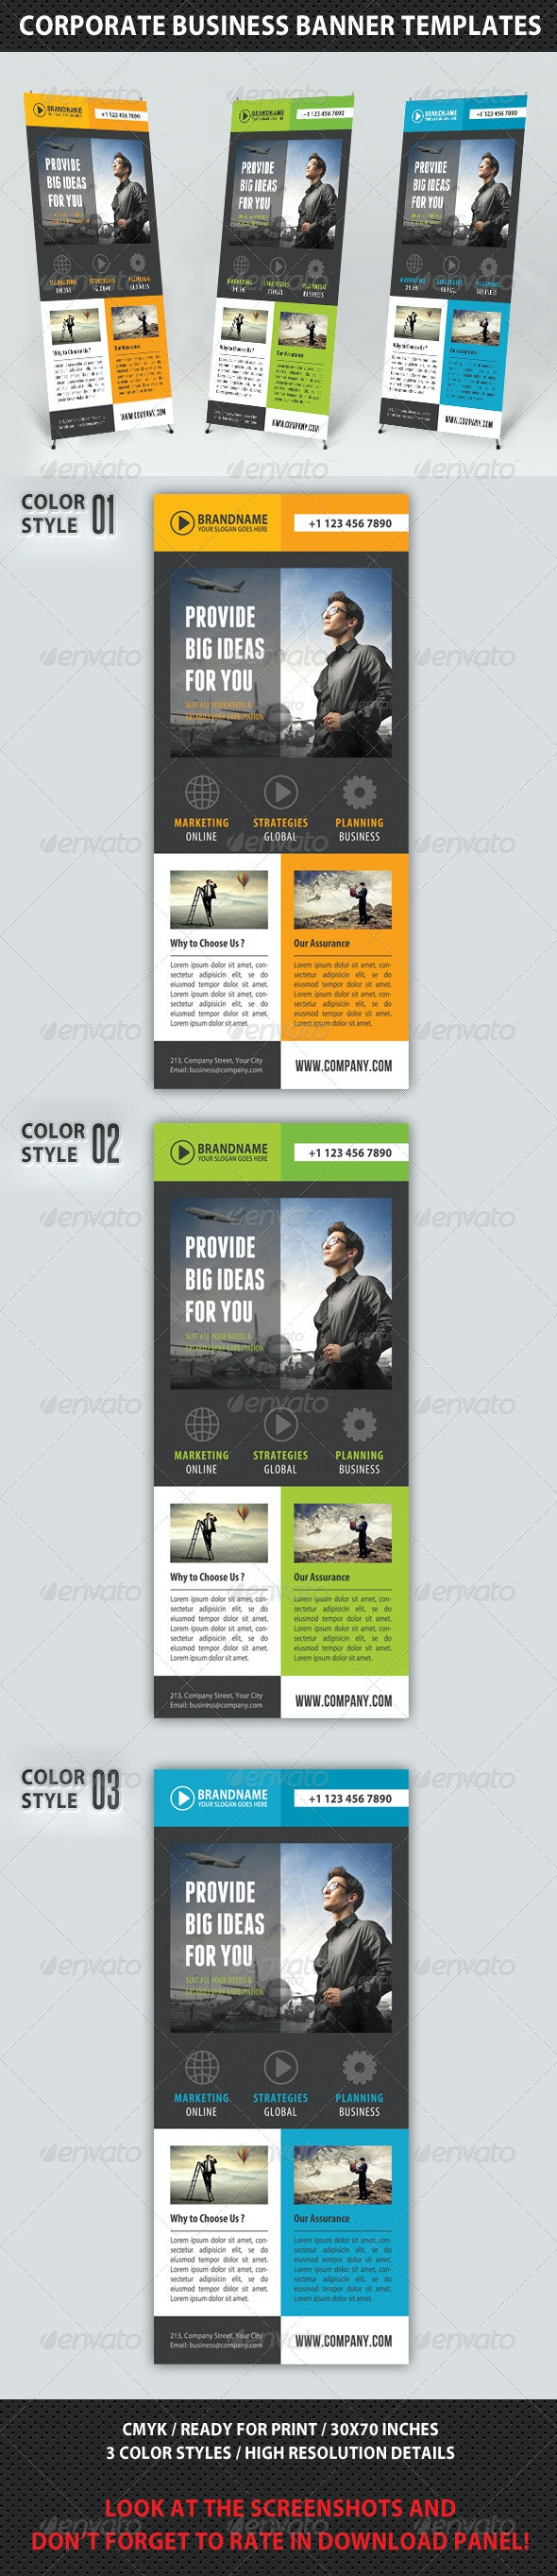 Corporate Multipurpose Banner Template 68 - Signage Print Templates